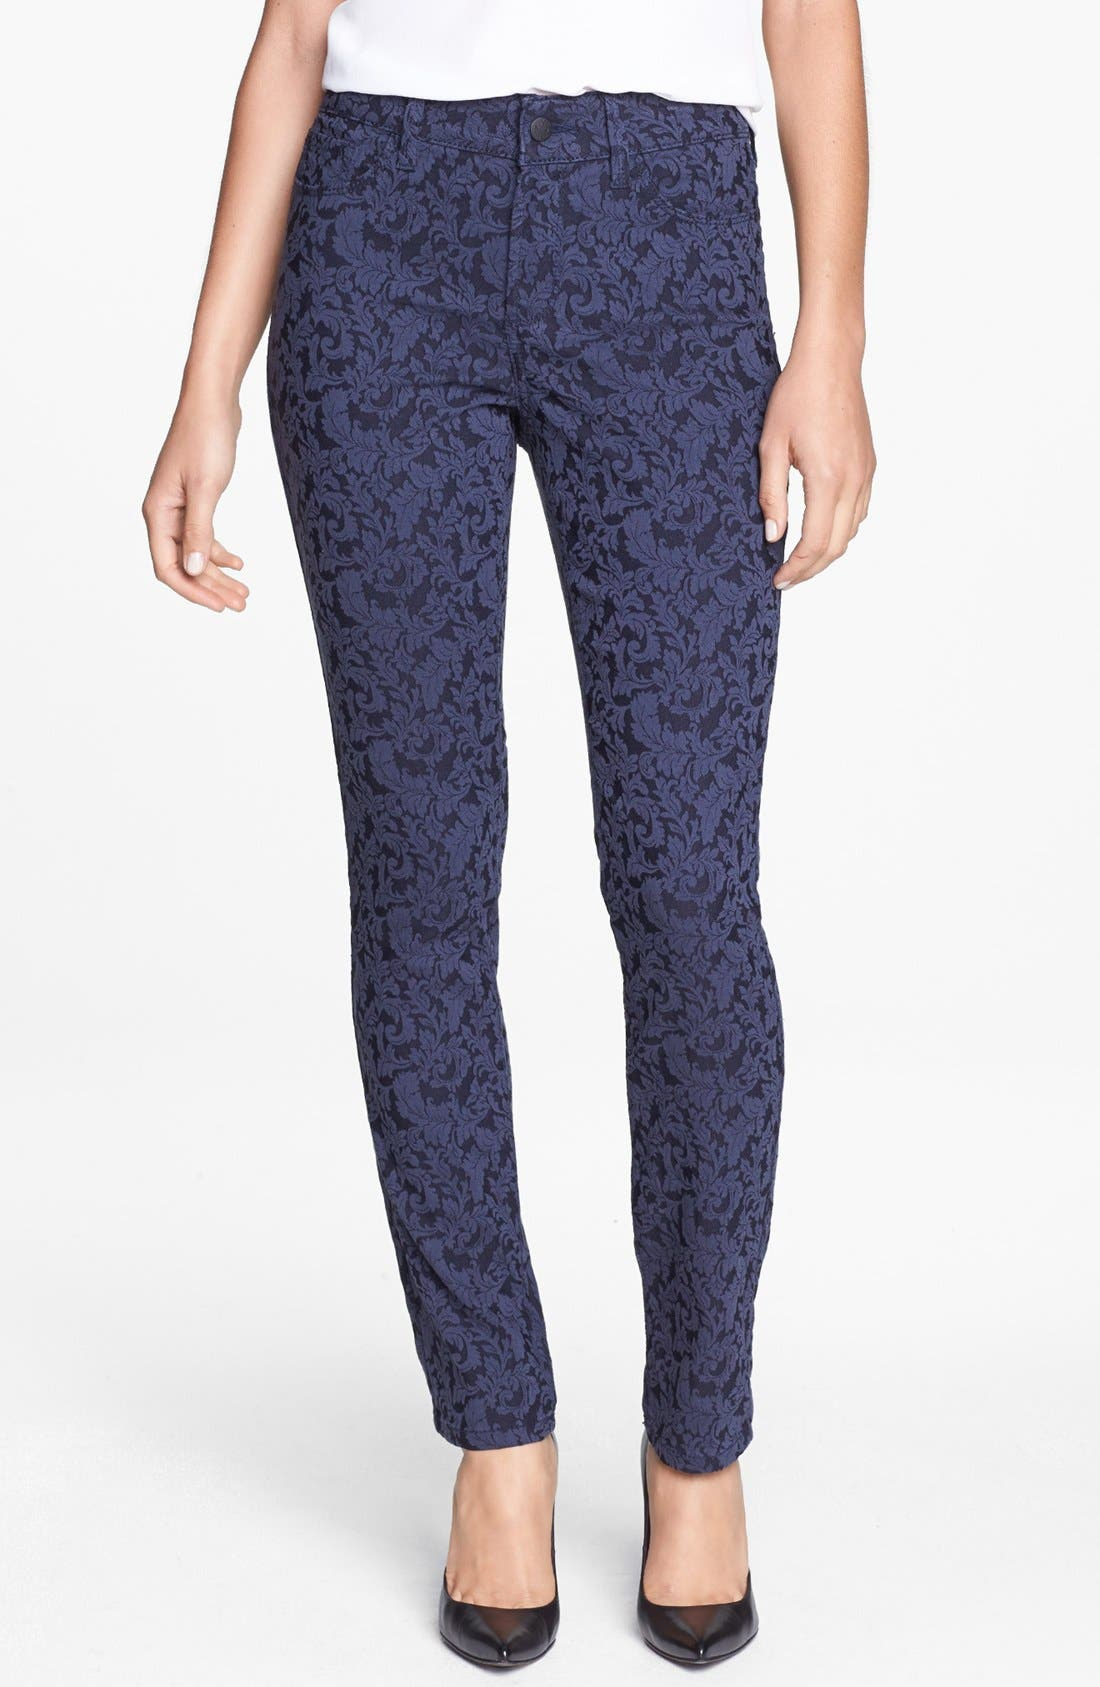 Main Image - NYDJ 'Jade' Patterned Stretch Skinny Jeans (Navy Jacquard)